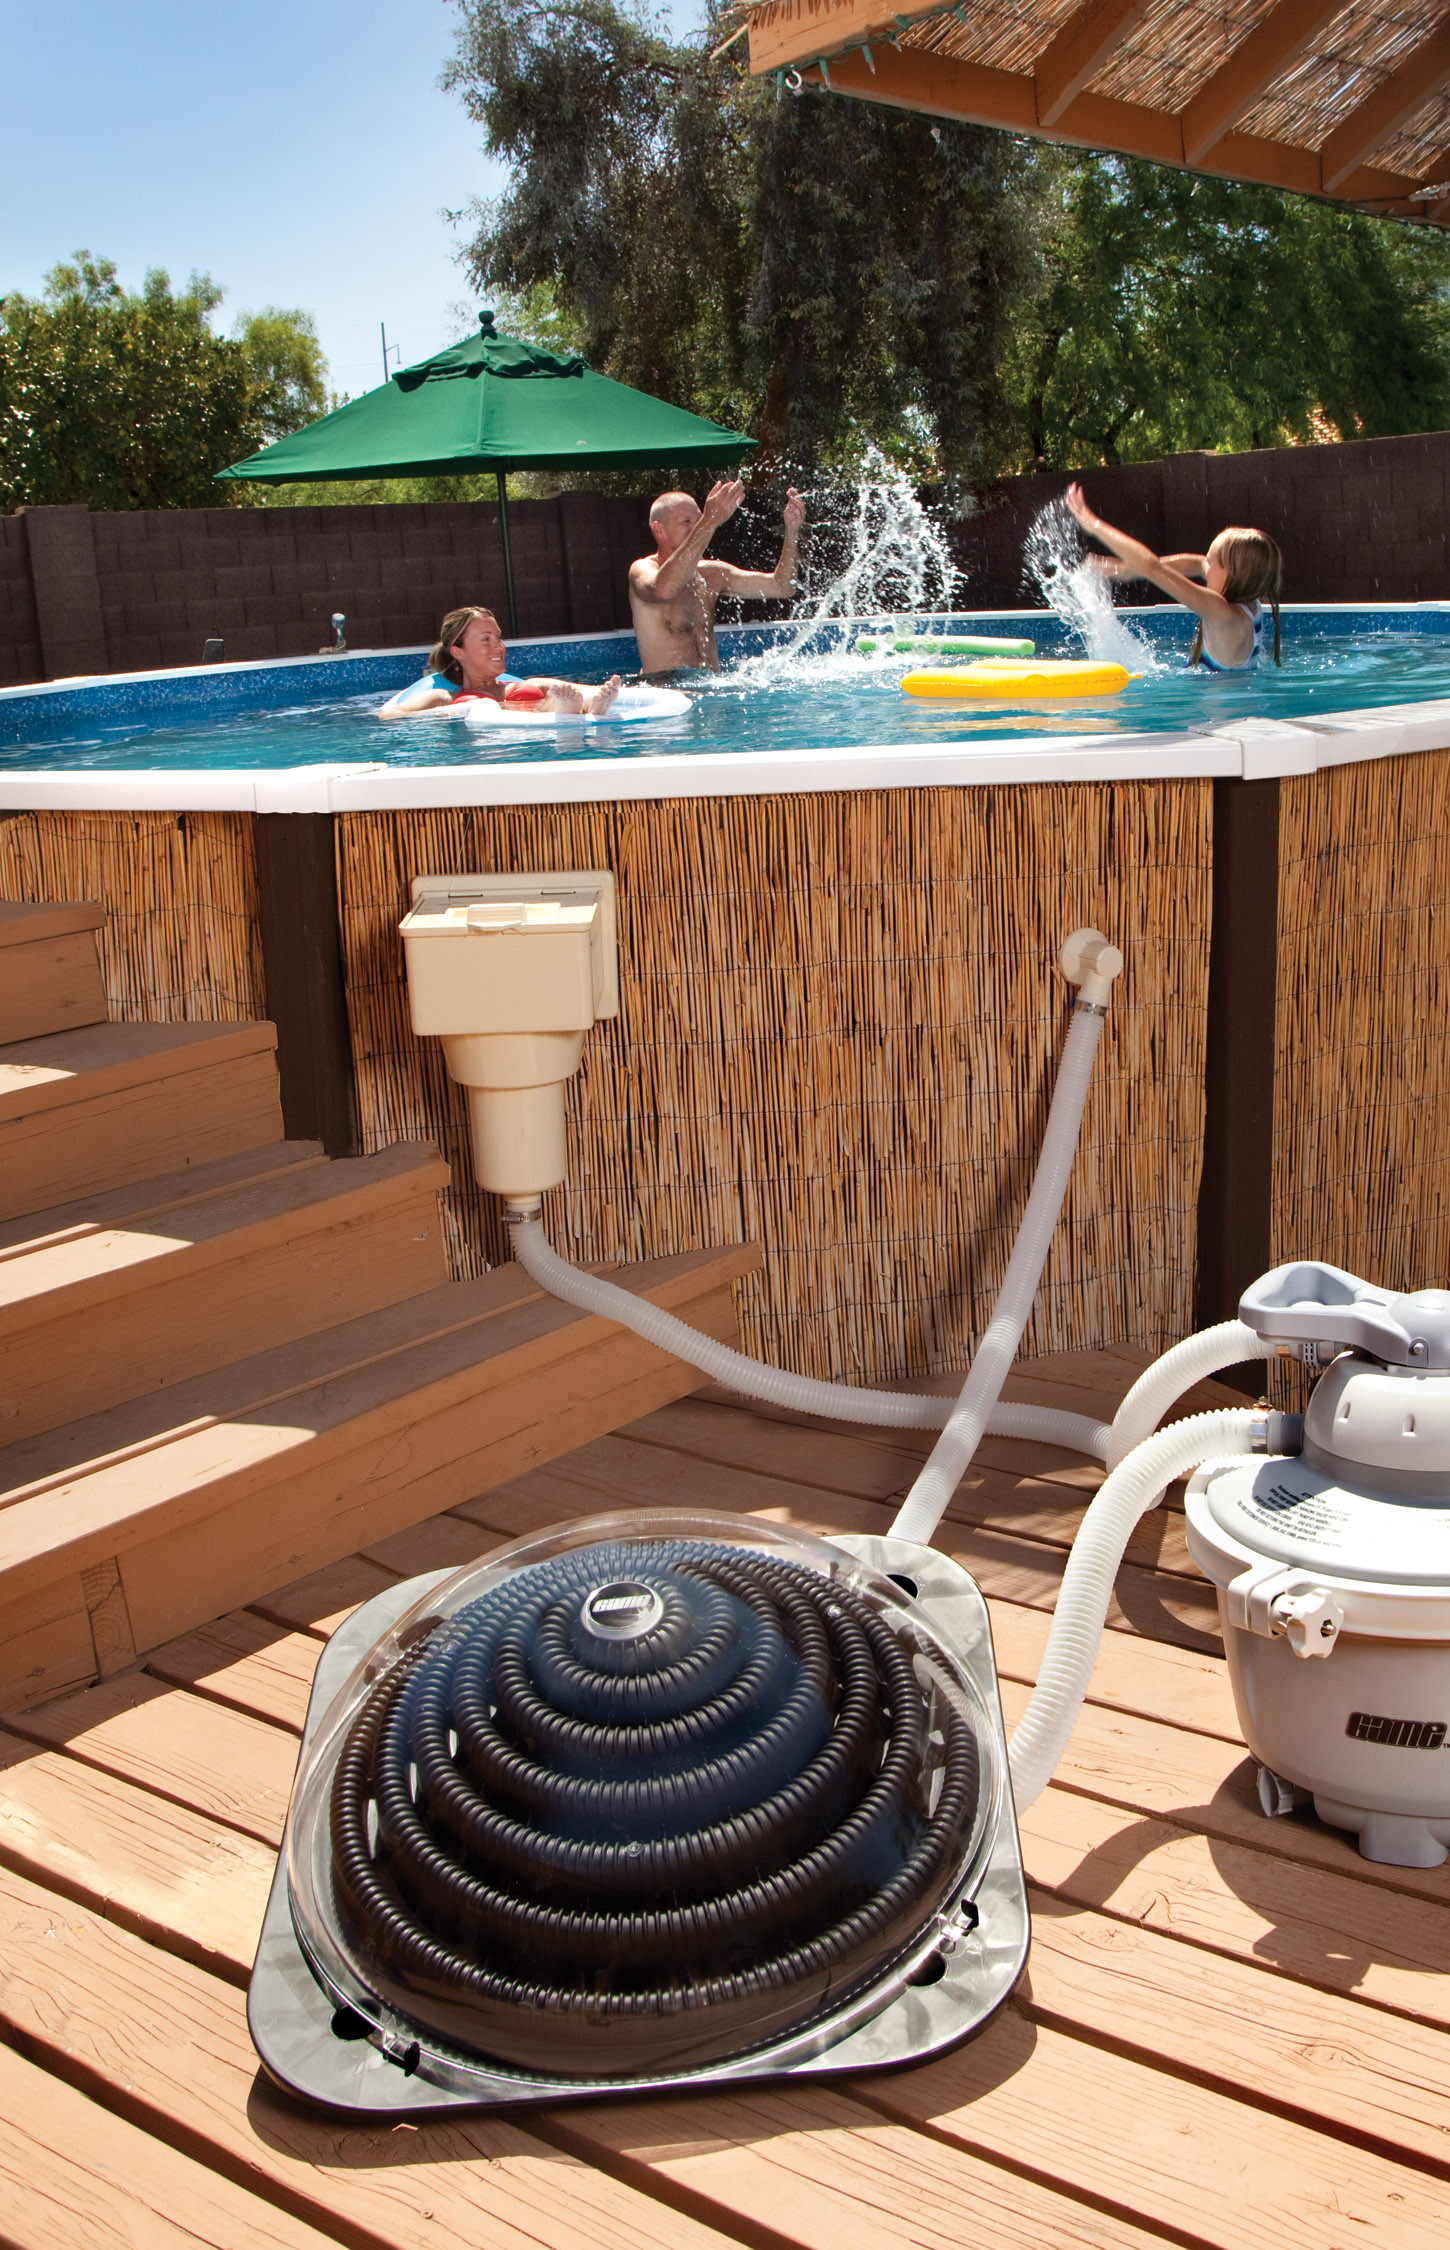 Best ideas about Solar Heater For Inground Pool . Save or Pin Sun2Solar Deluxe Ground Solar Heater XD1 Now.